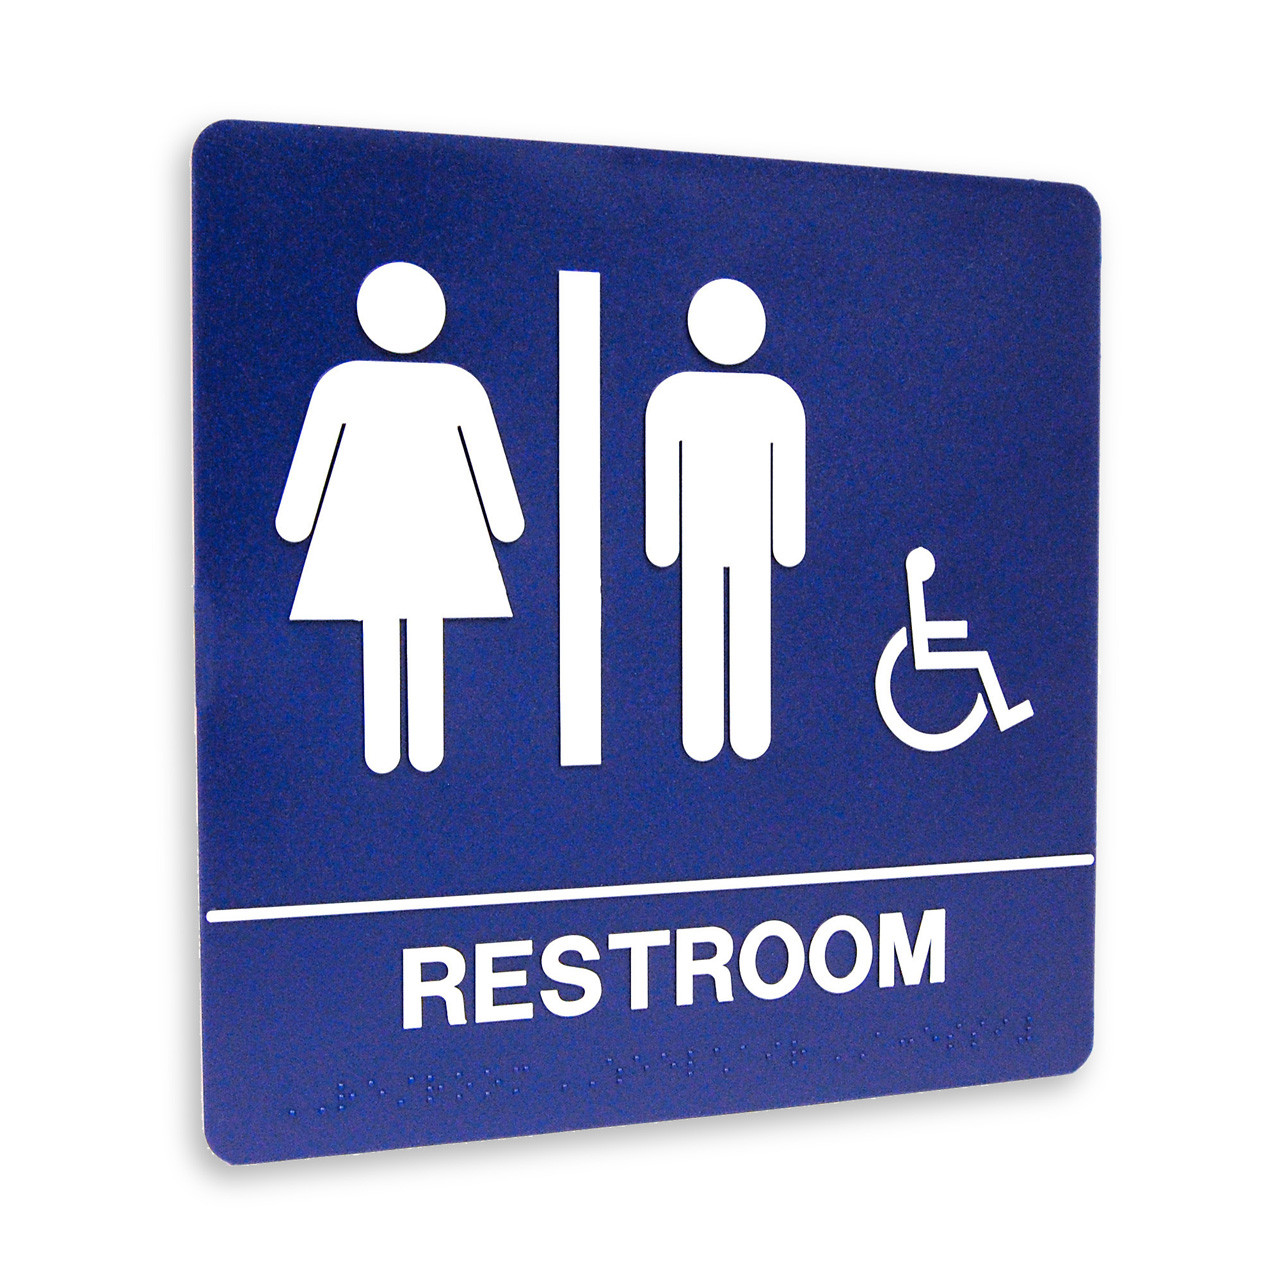 Http Kroysignstore Mybigcommerce Com Molded Braille 8 X 8 Molded Braille Restroom Sign Restroom W Isa